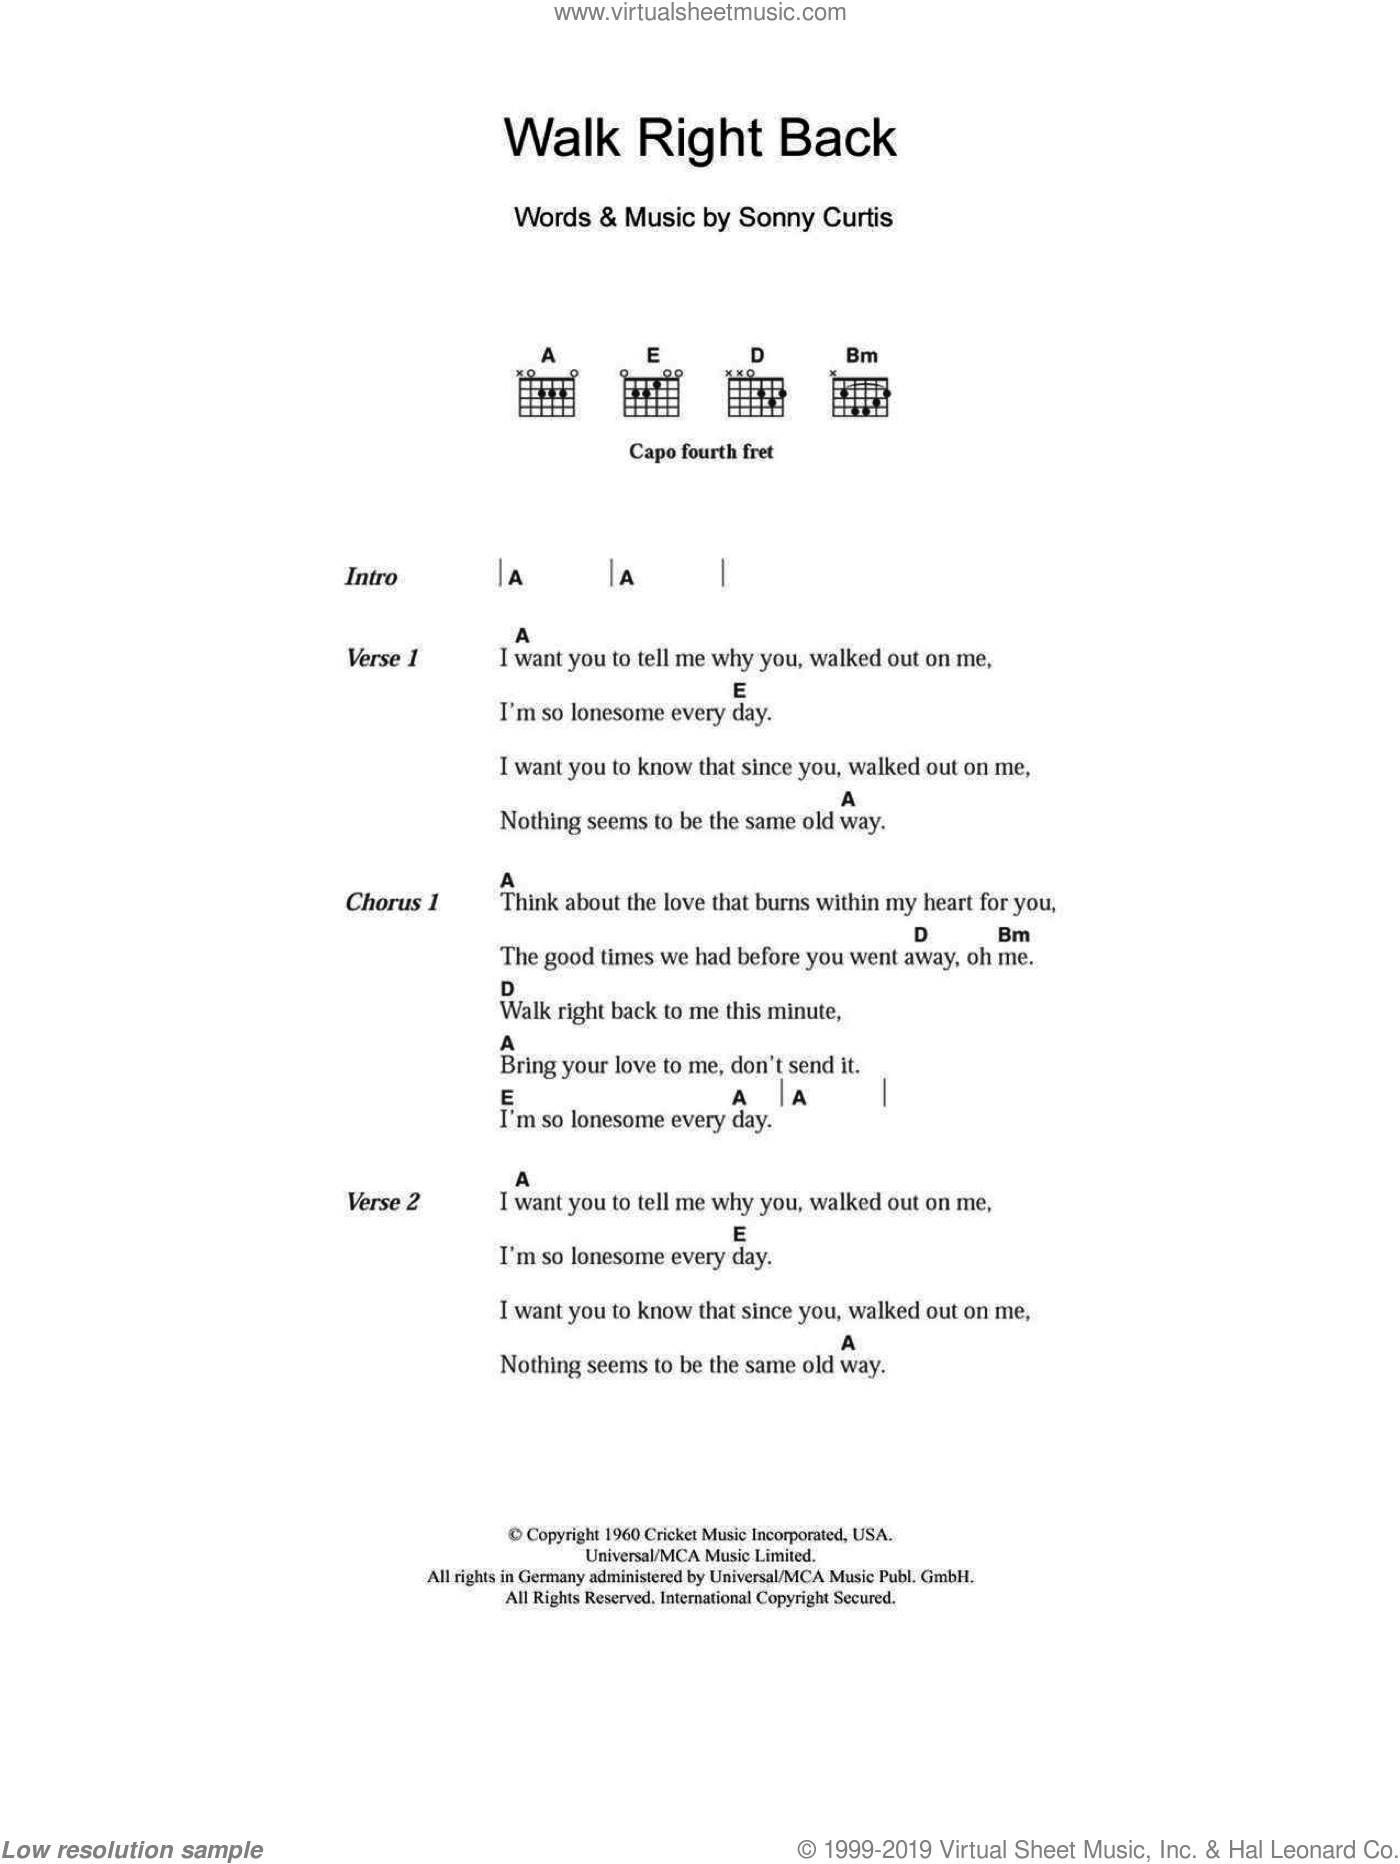 Everly Brothers - Walk Right Back sheet music for guitar (chords)